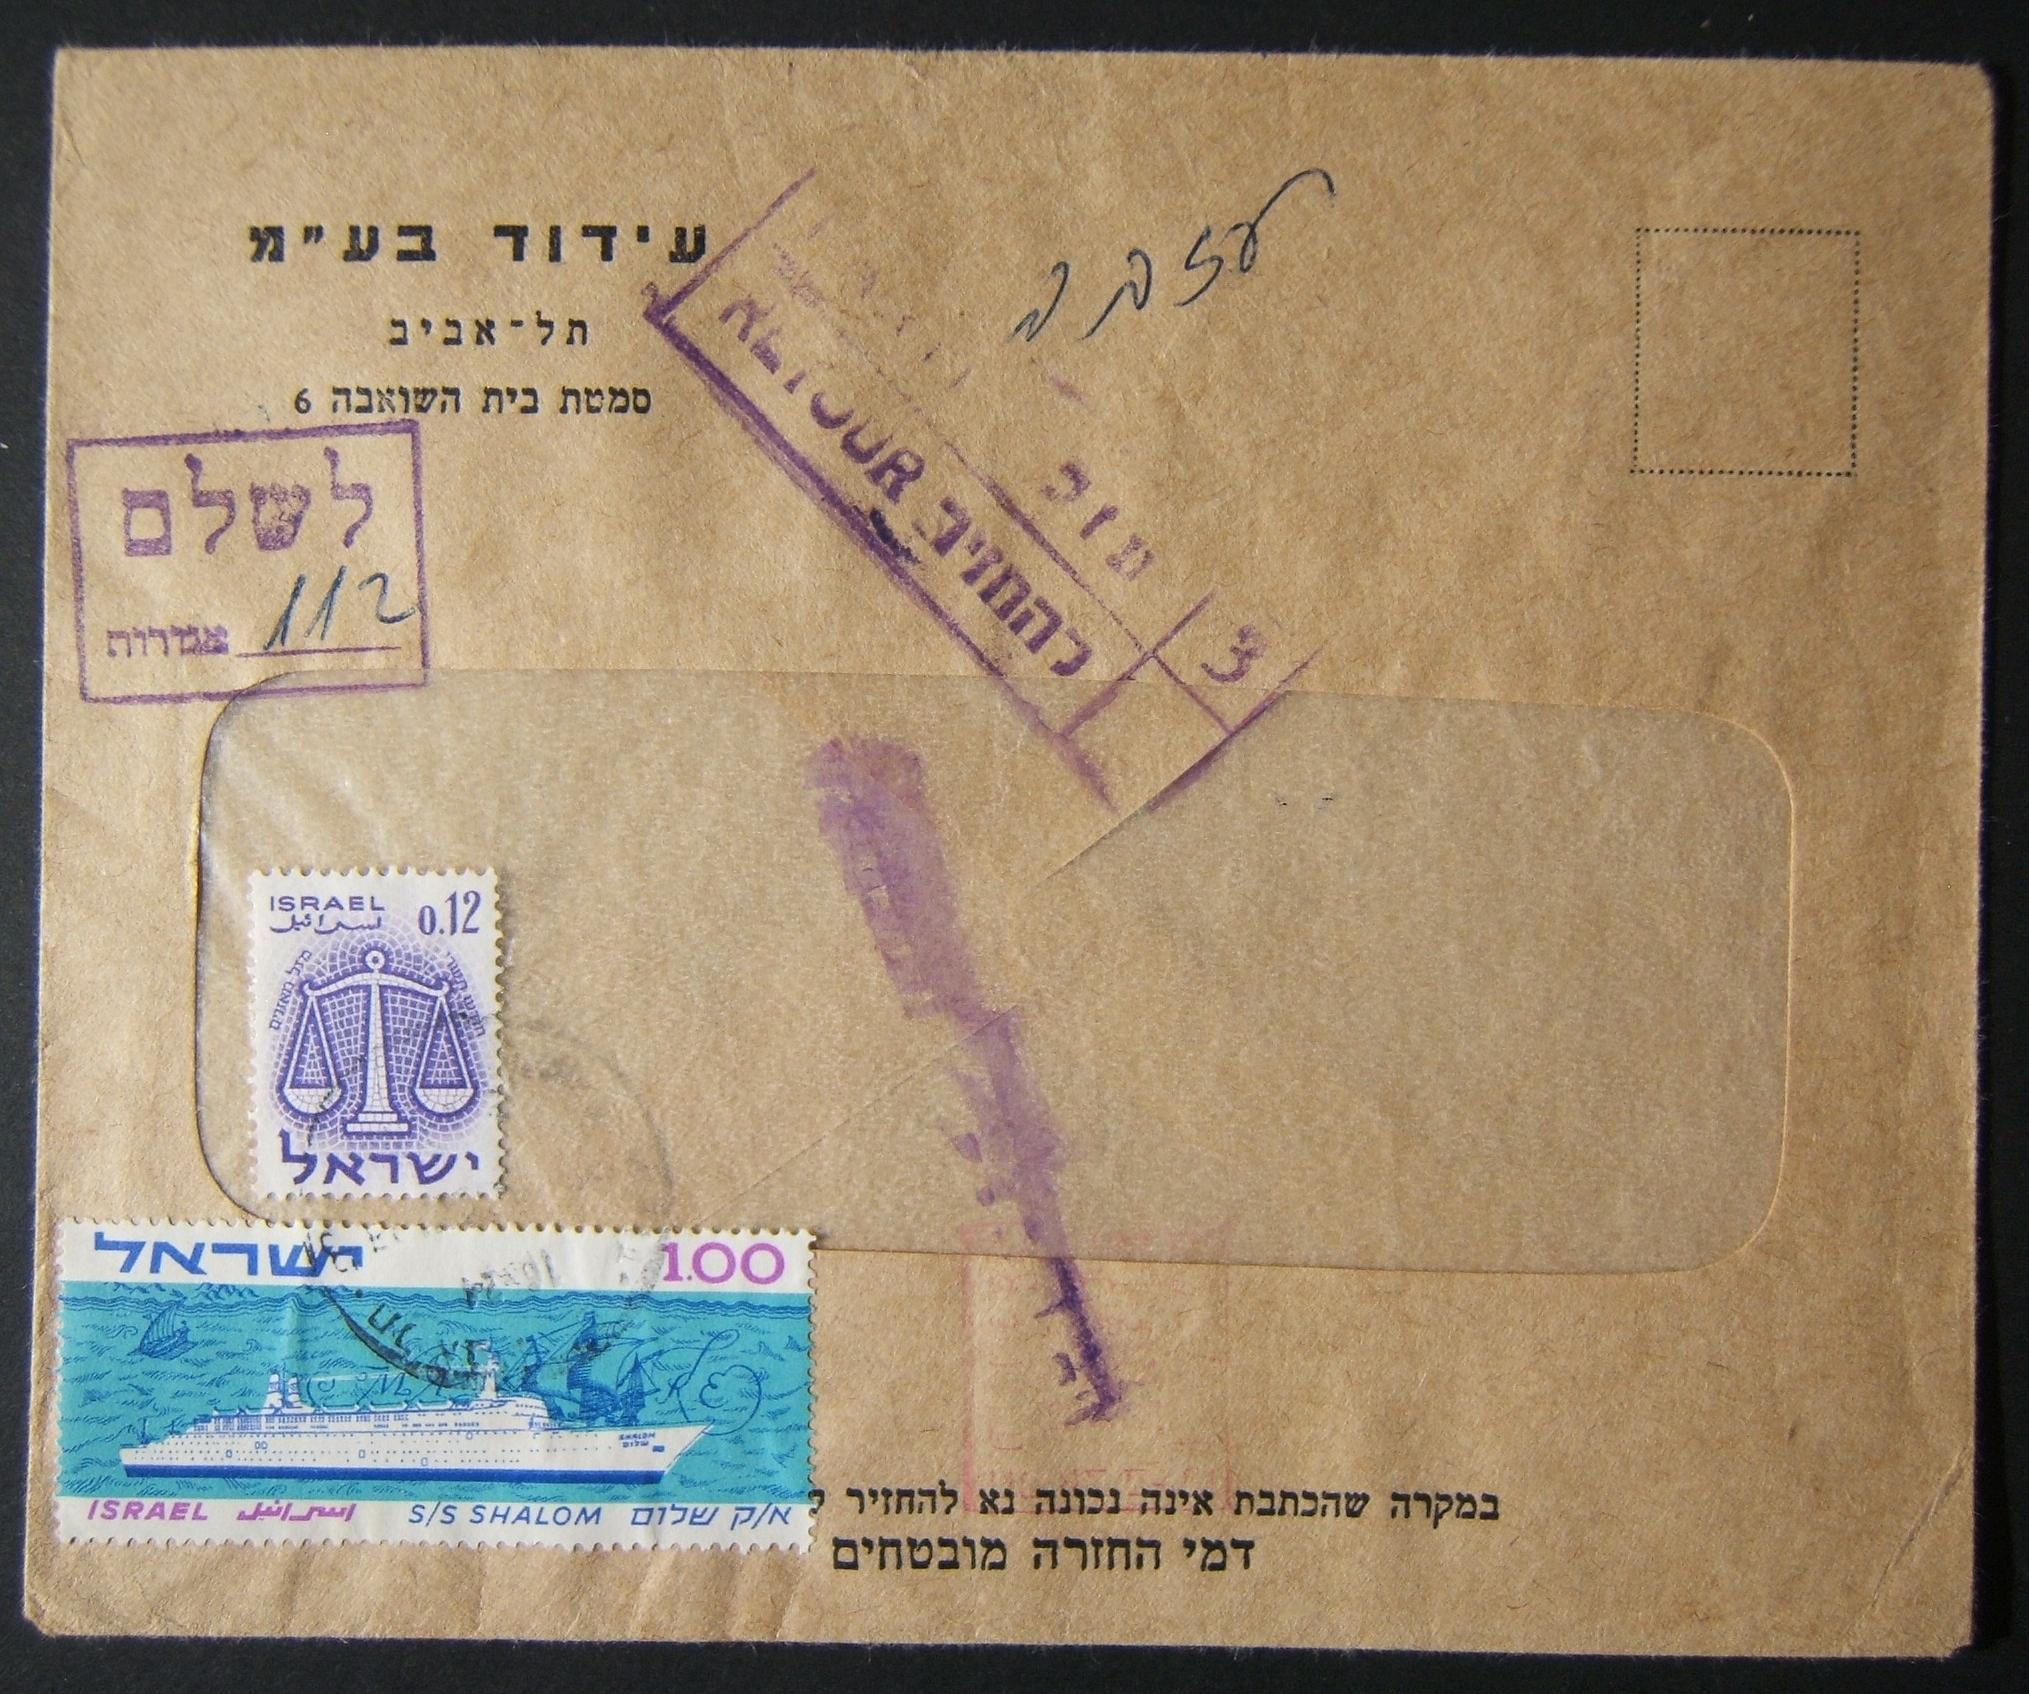 1963 era domestic 'top of the pile' taxed franking: 1963(?) printed matter commercial cover ex TLV branch of Idud Ltd. franked by machine prepayment at the DO-11 period 8 Ag PM rat